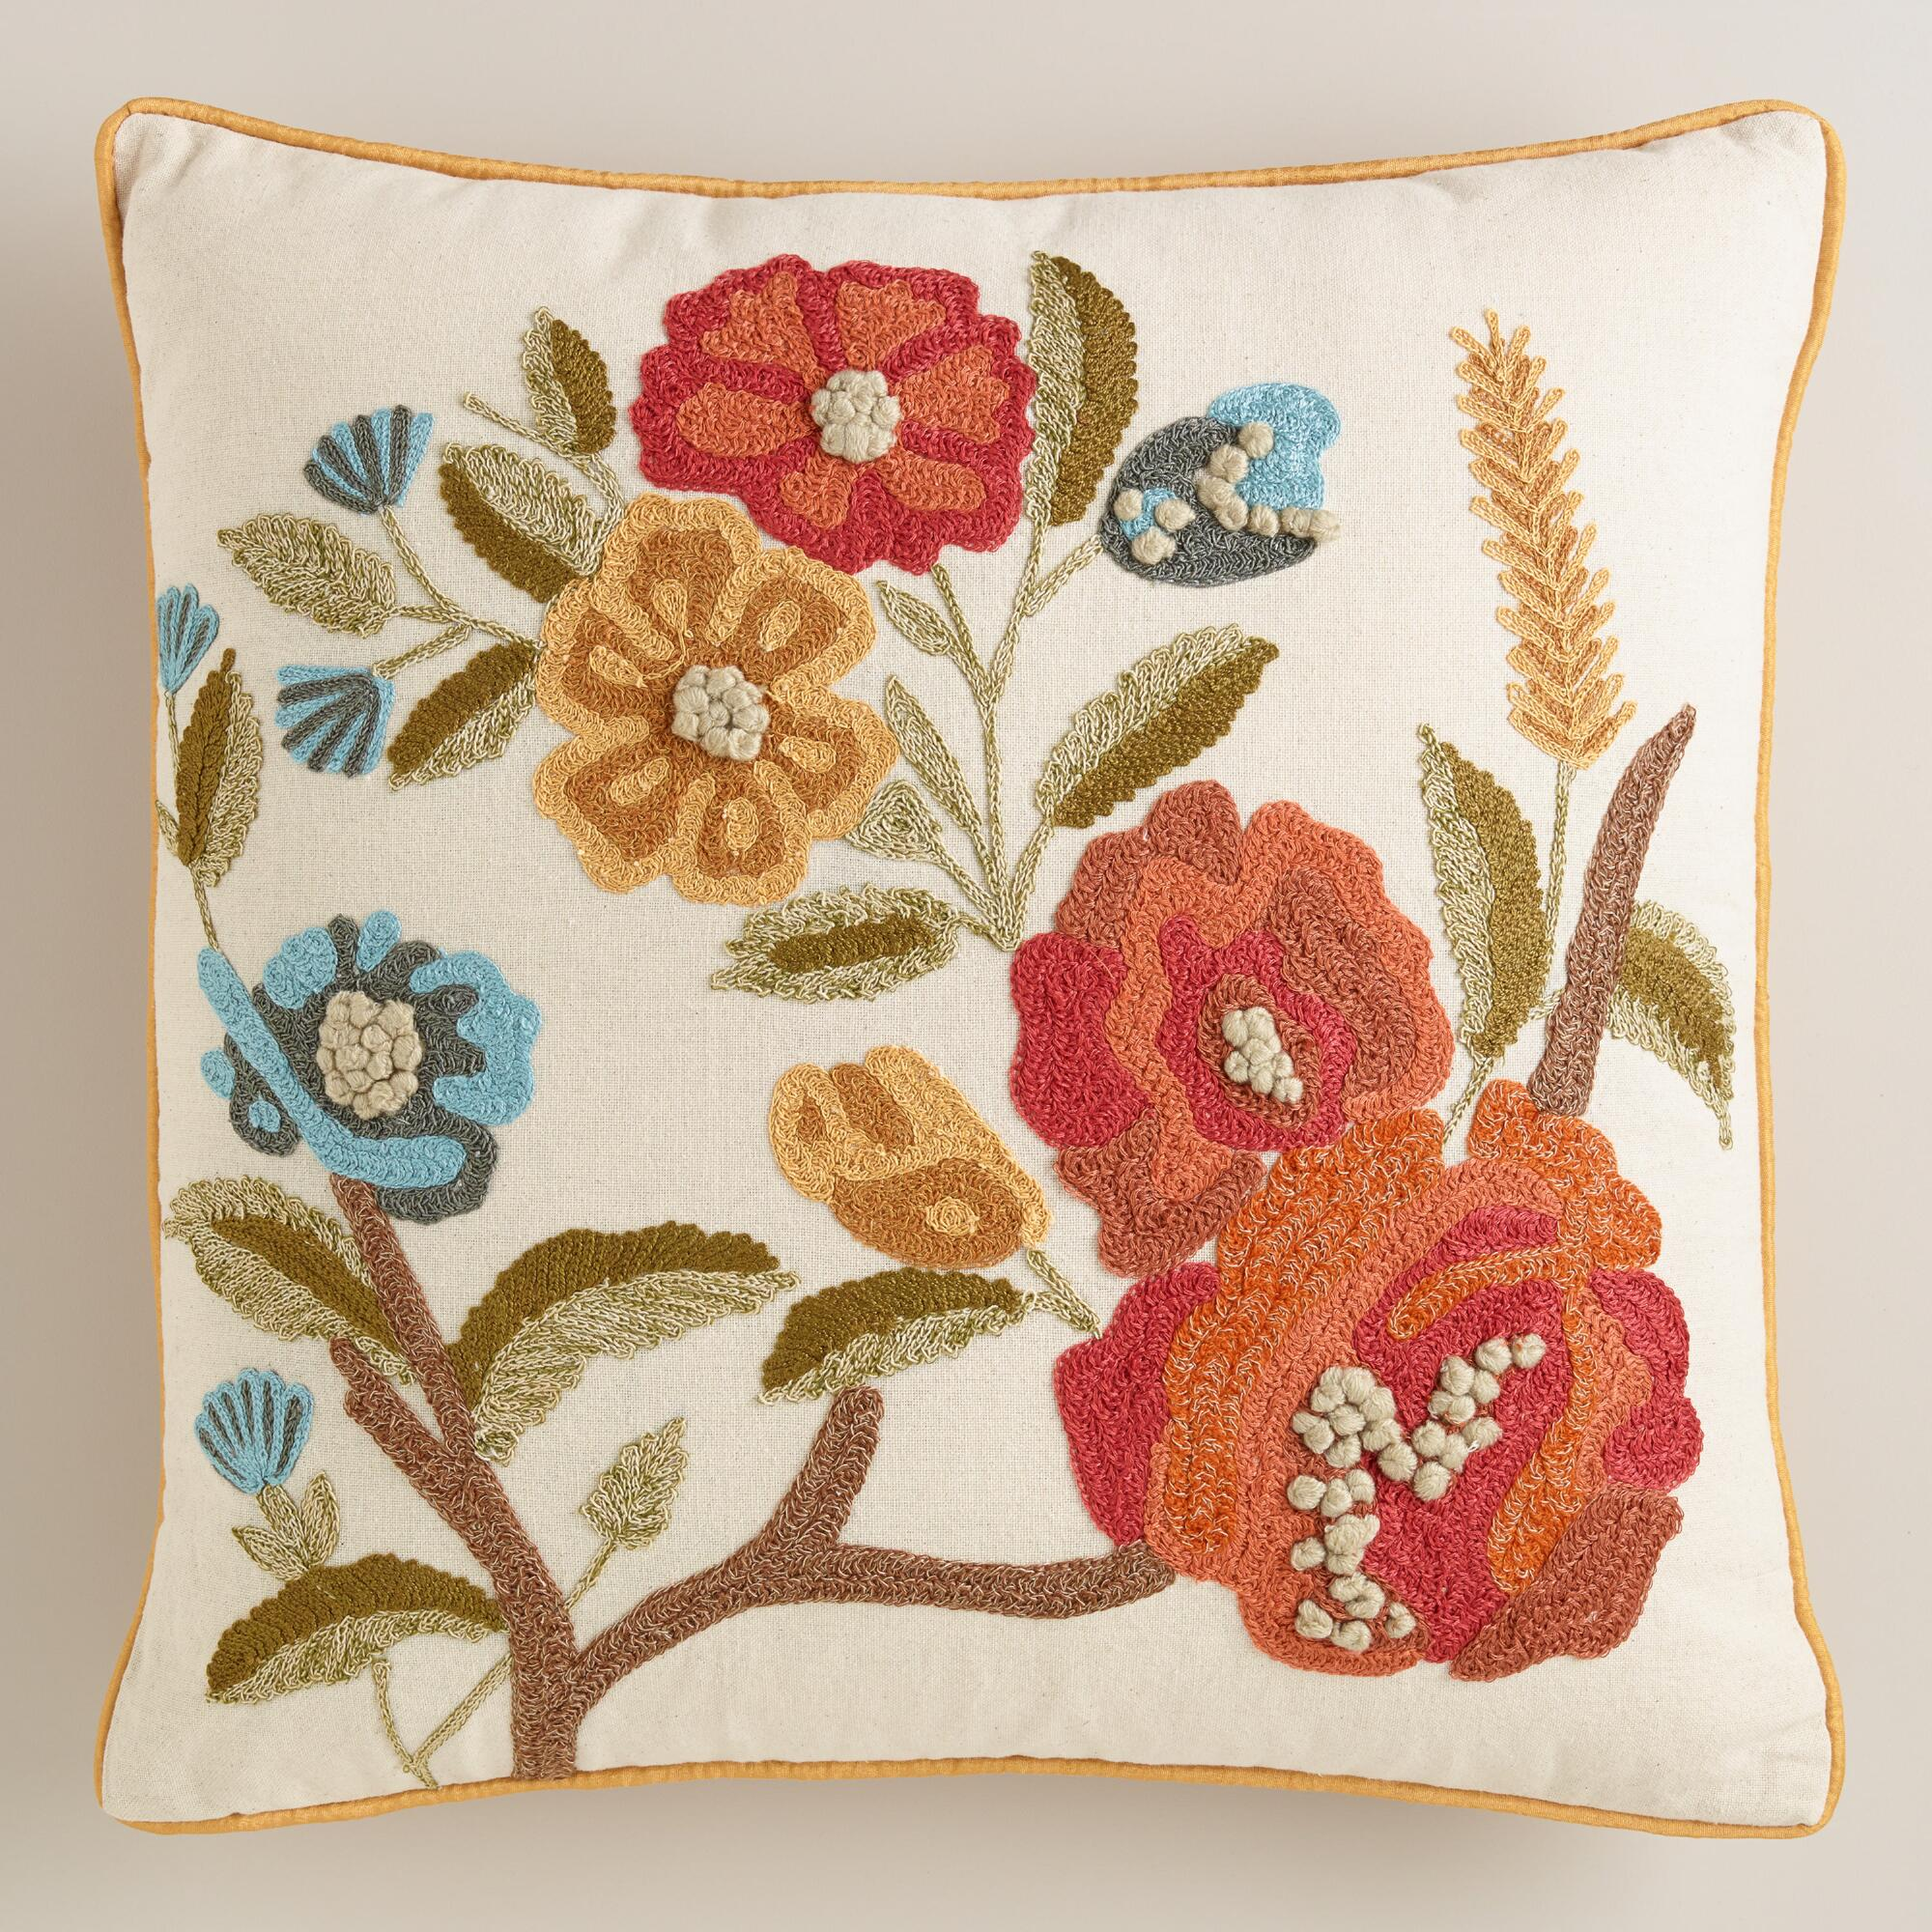 Floral Embroidered Decorative Pillow : Floral Embroidered Throw Pillow World Market